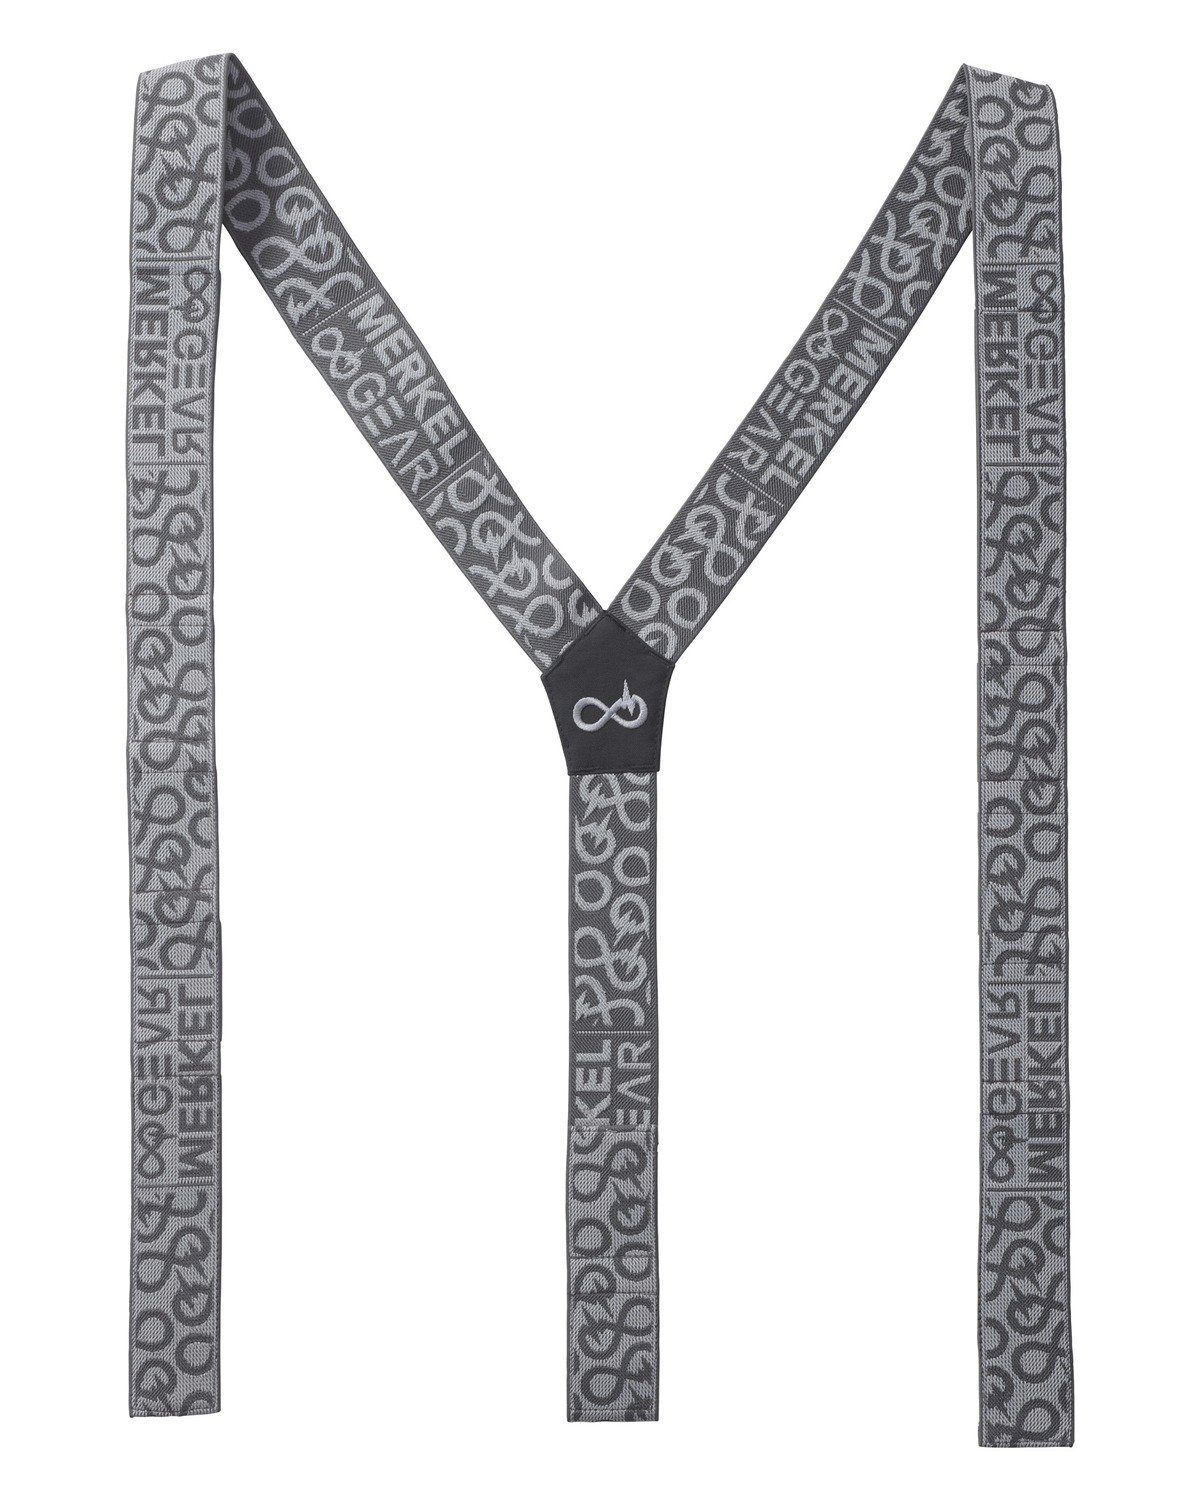 Merkel Gear Suspenders